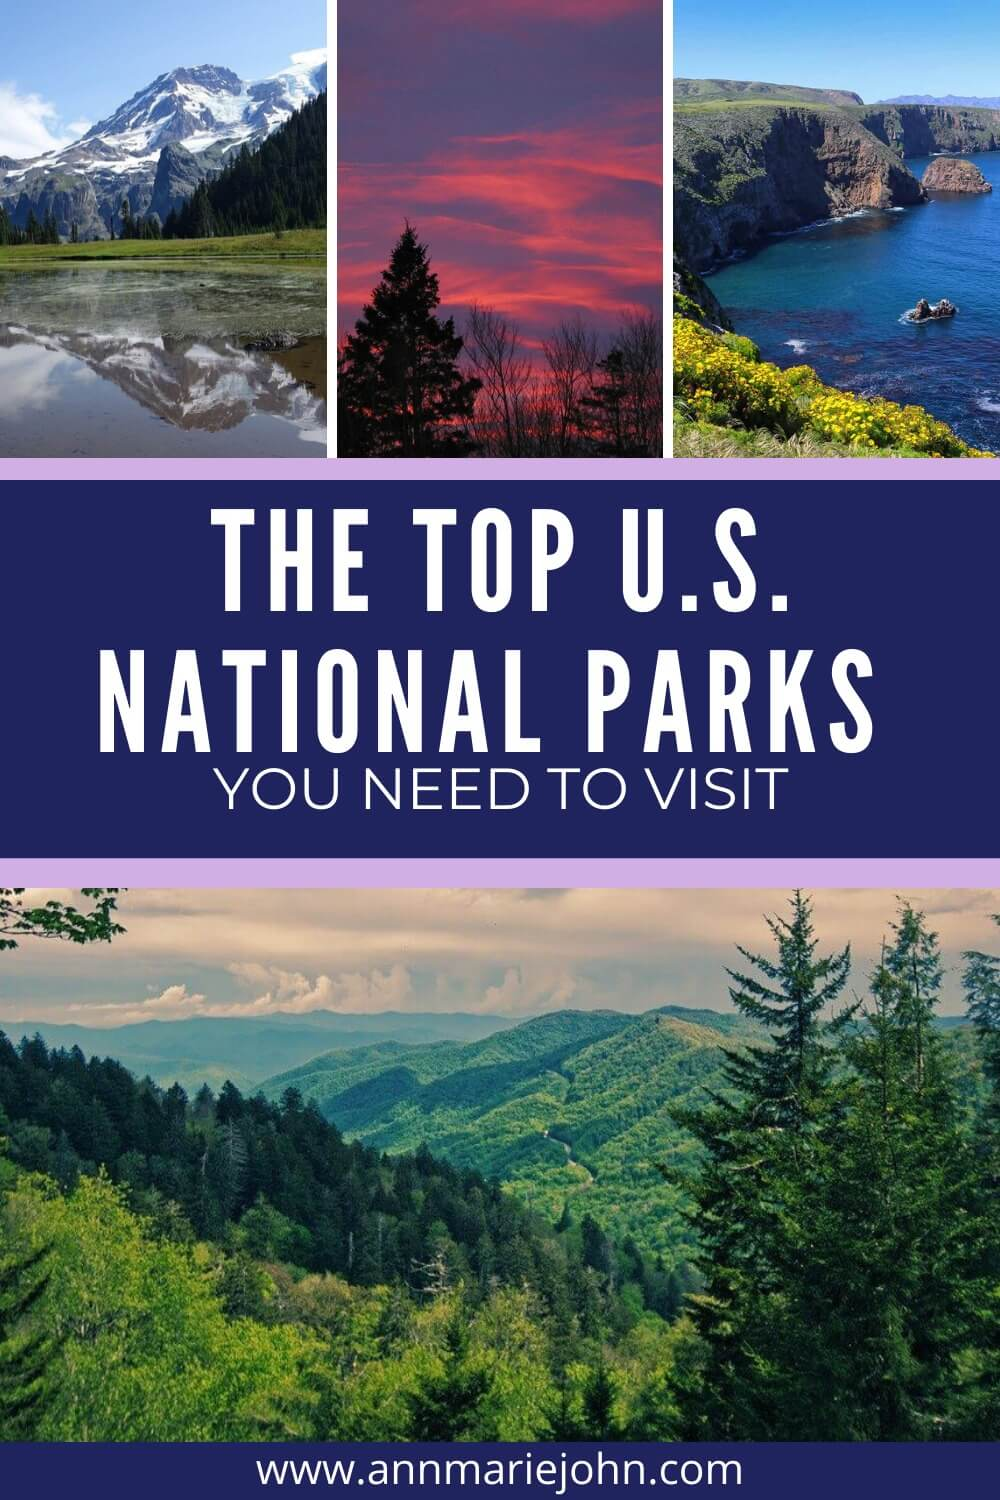 The Top US National Parks You Need to Visit